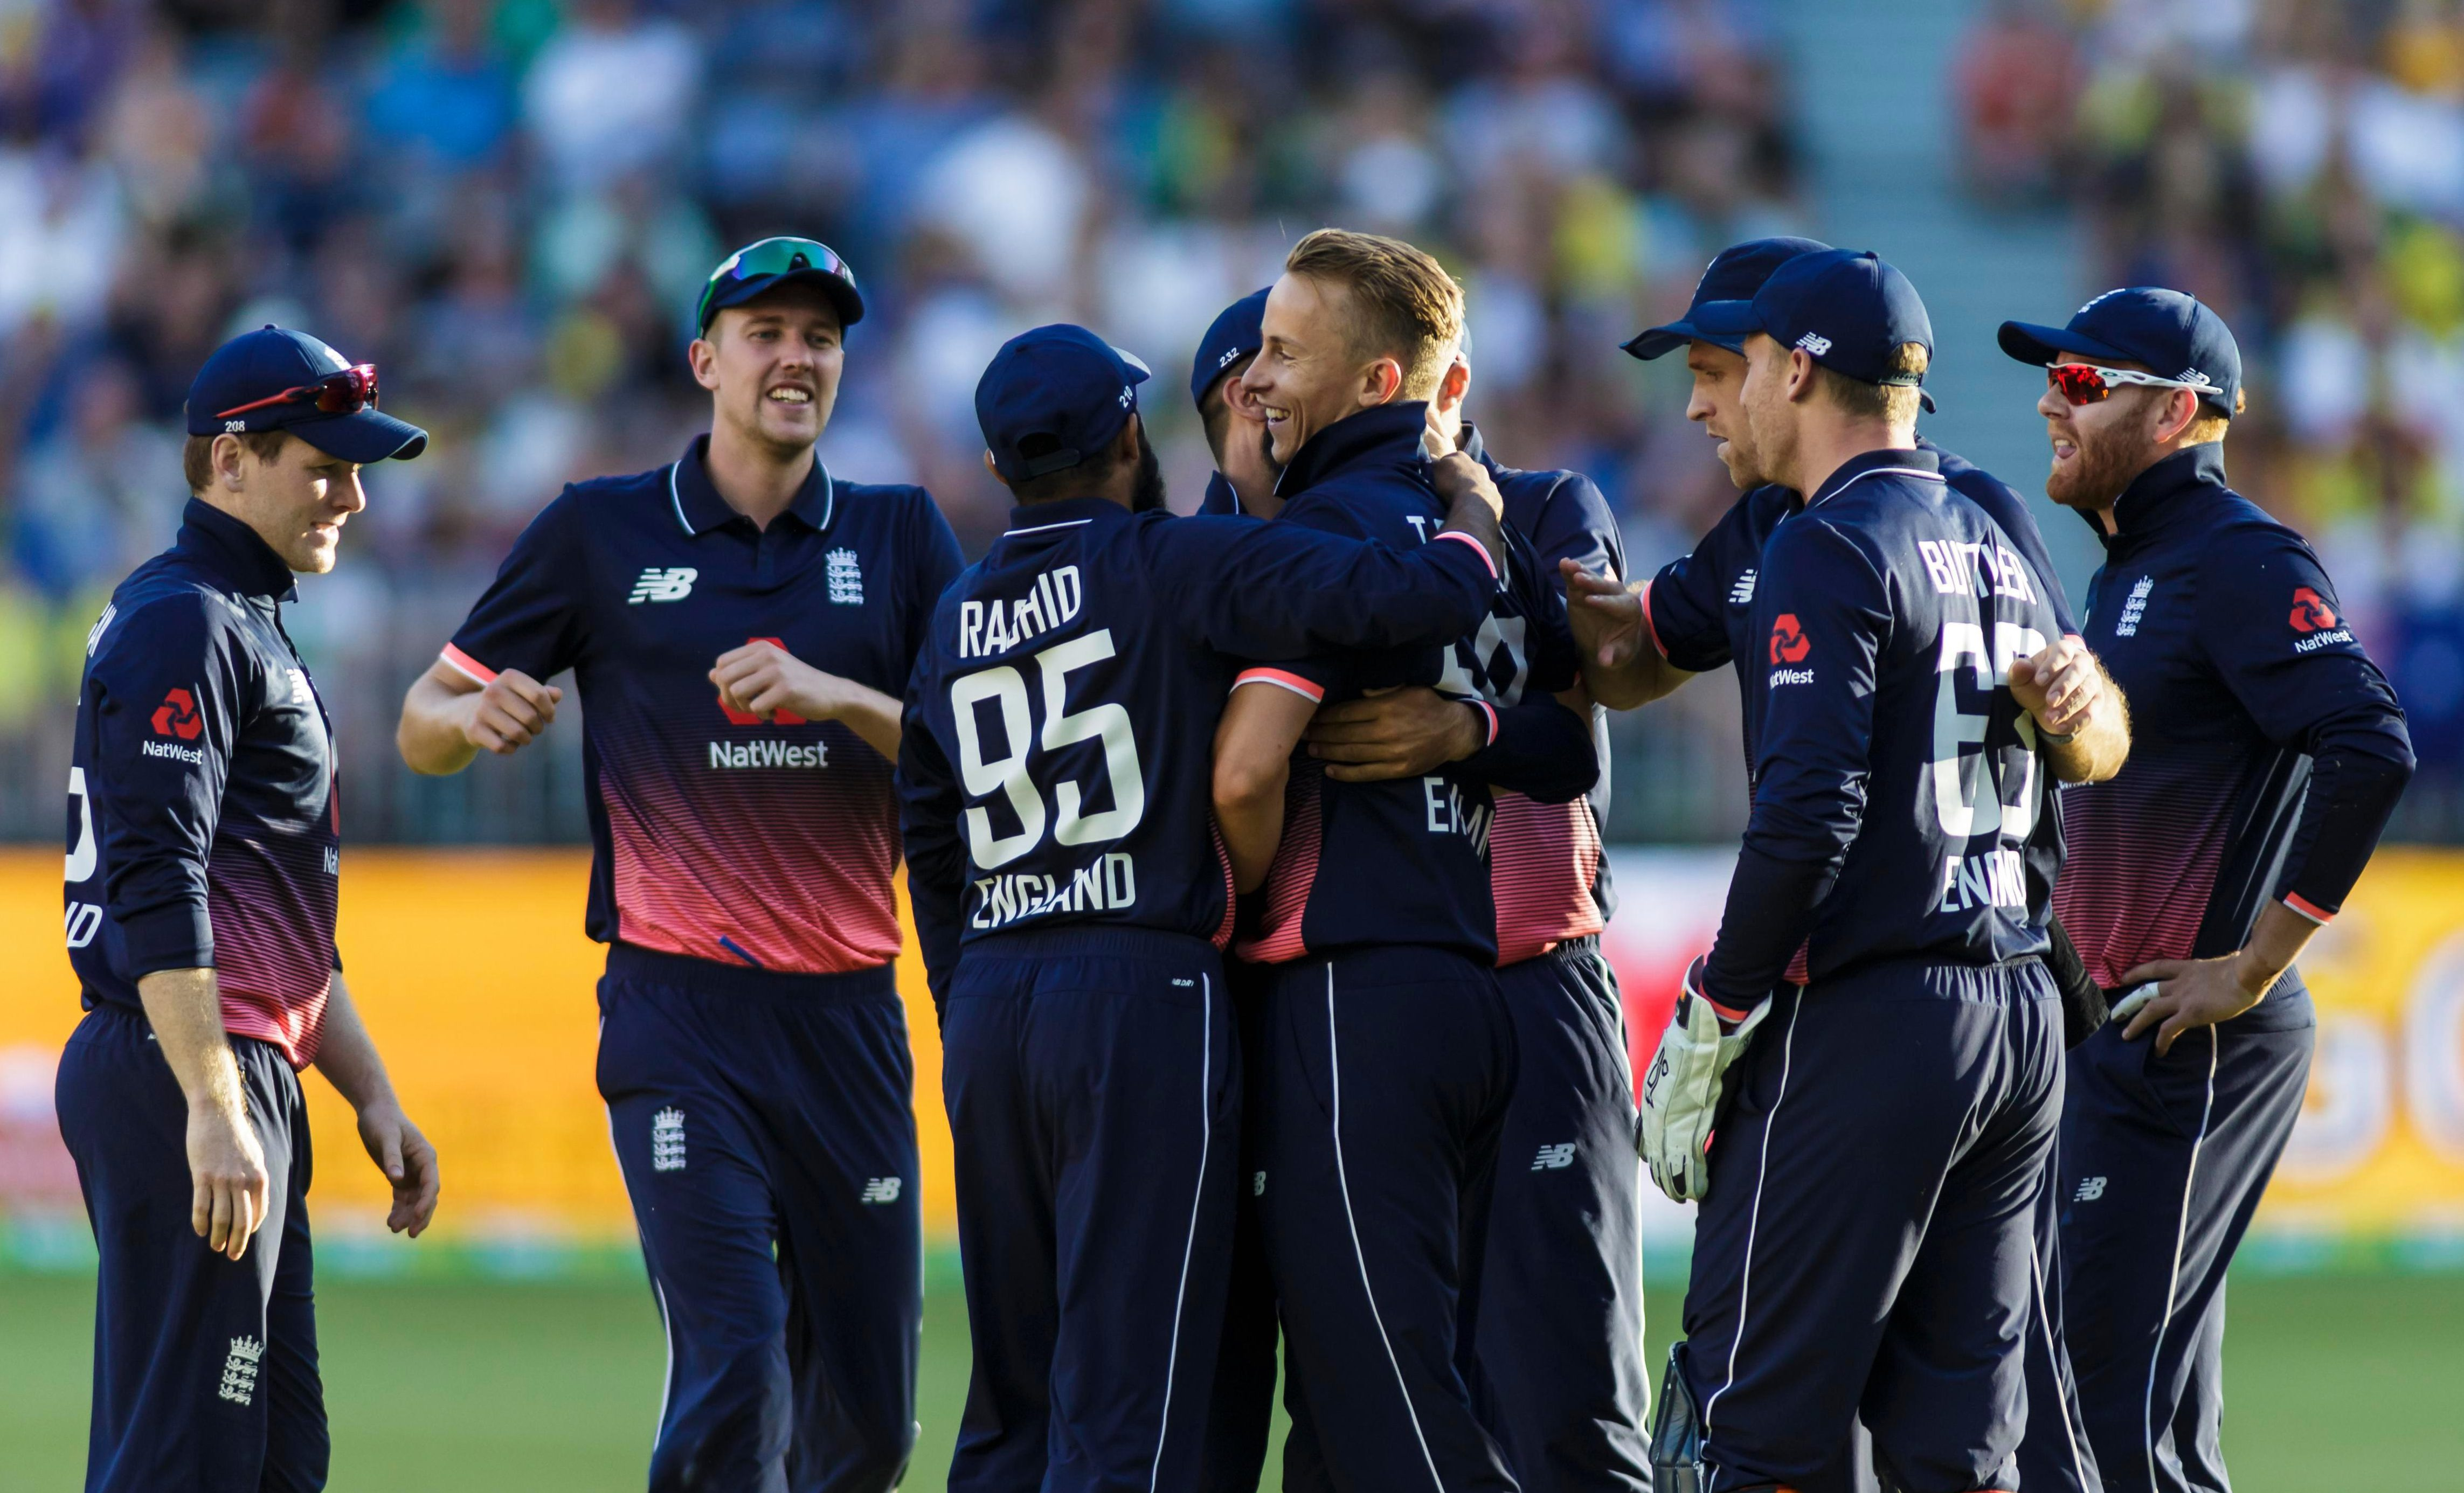 The England squad celebrate after securing the ODI win against Australia